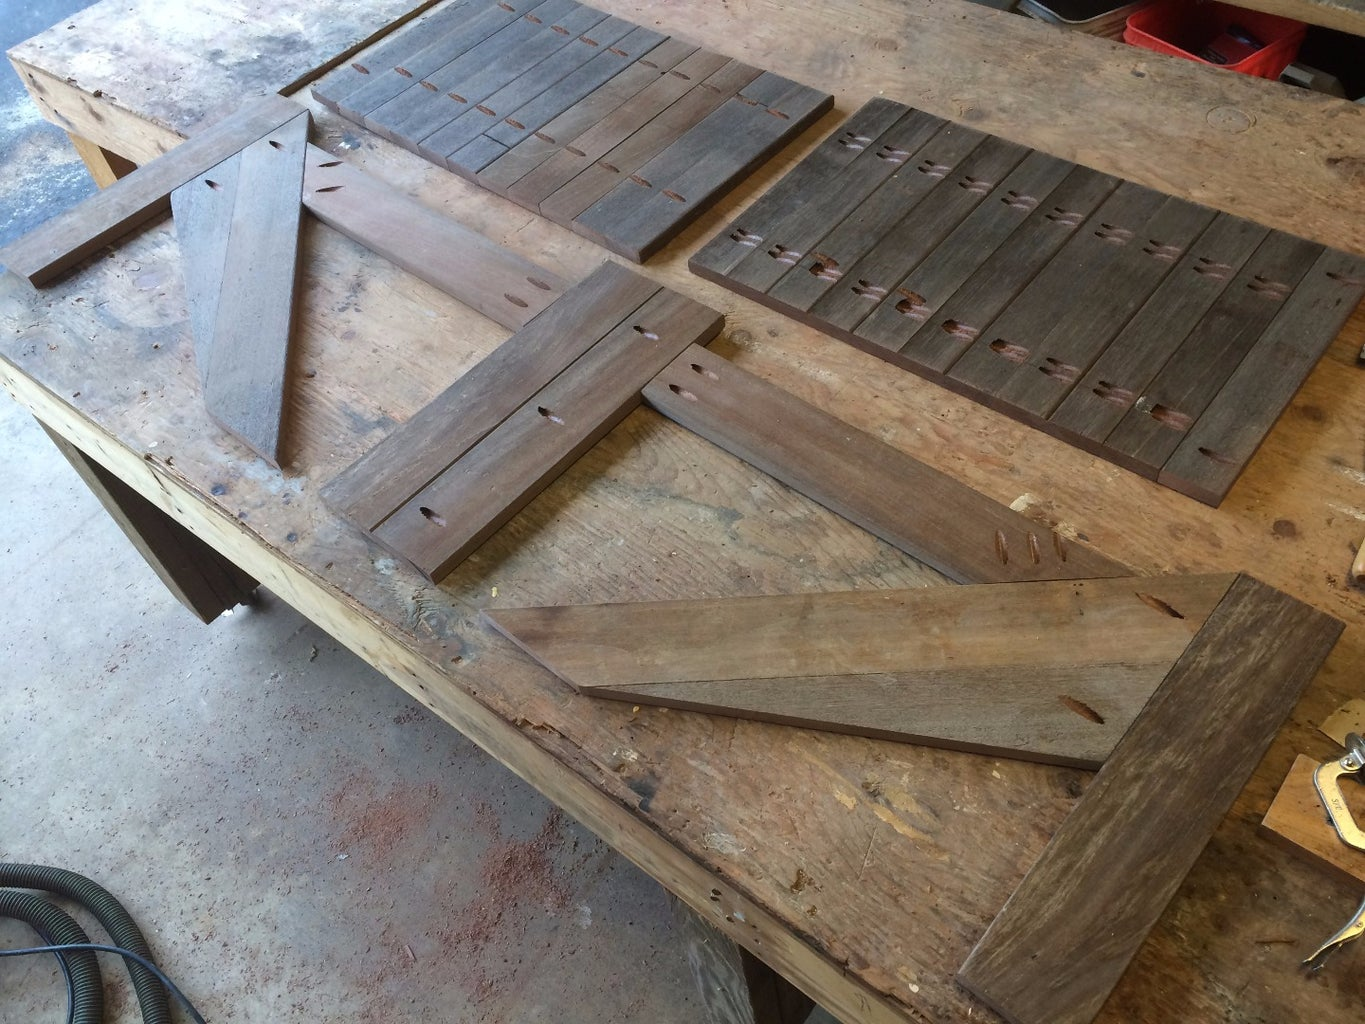 Kreg Drill the Slats, and the Outer Frame